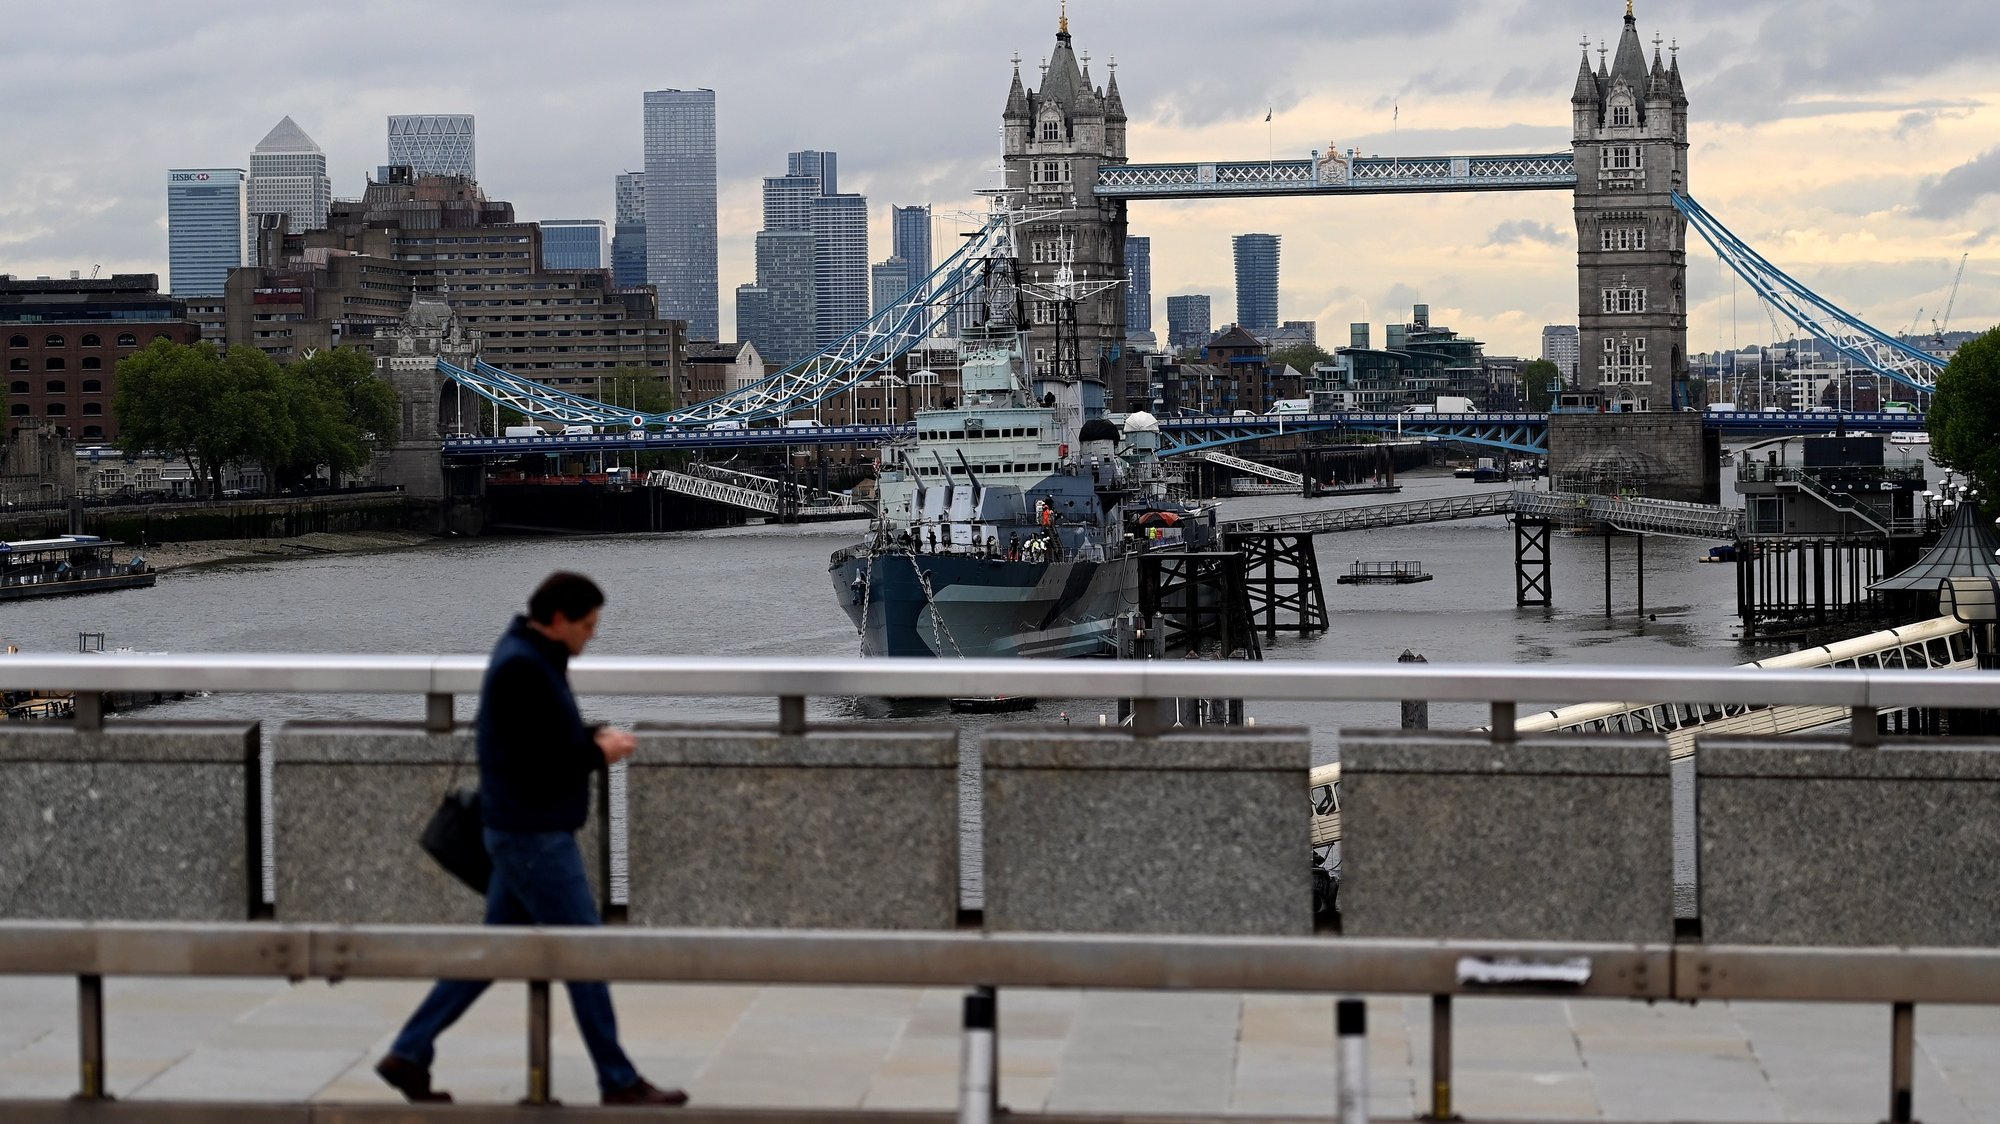 epa09226476 A pedestrian walks over London Bridge in central London, Britain, 25 May 2021. Britain's national debt has risen to its highest figure since the 1960's according to official data. The UK borrowed £37.7bn in April, the second highest April figures on record.  EPA/ANDY RAIN